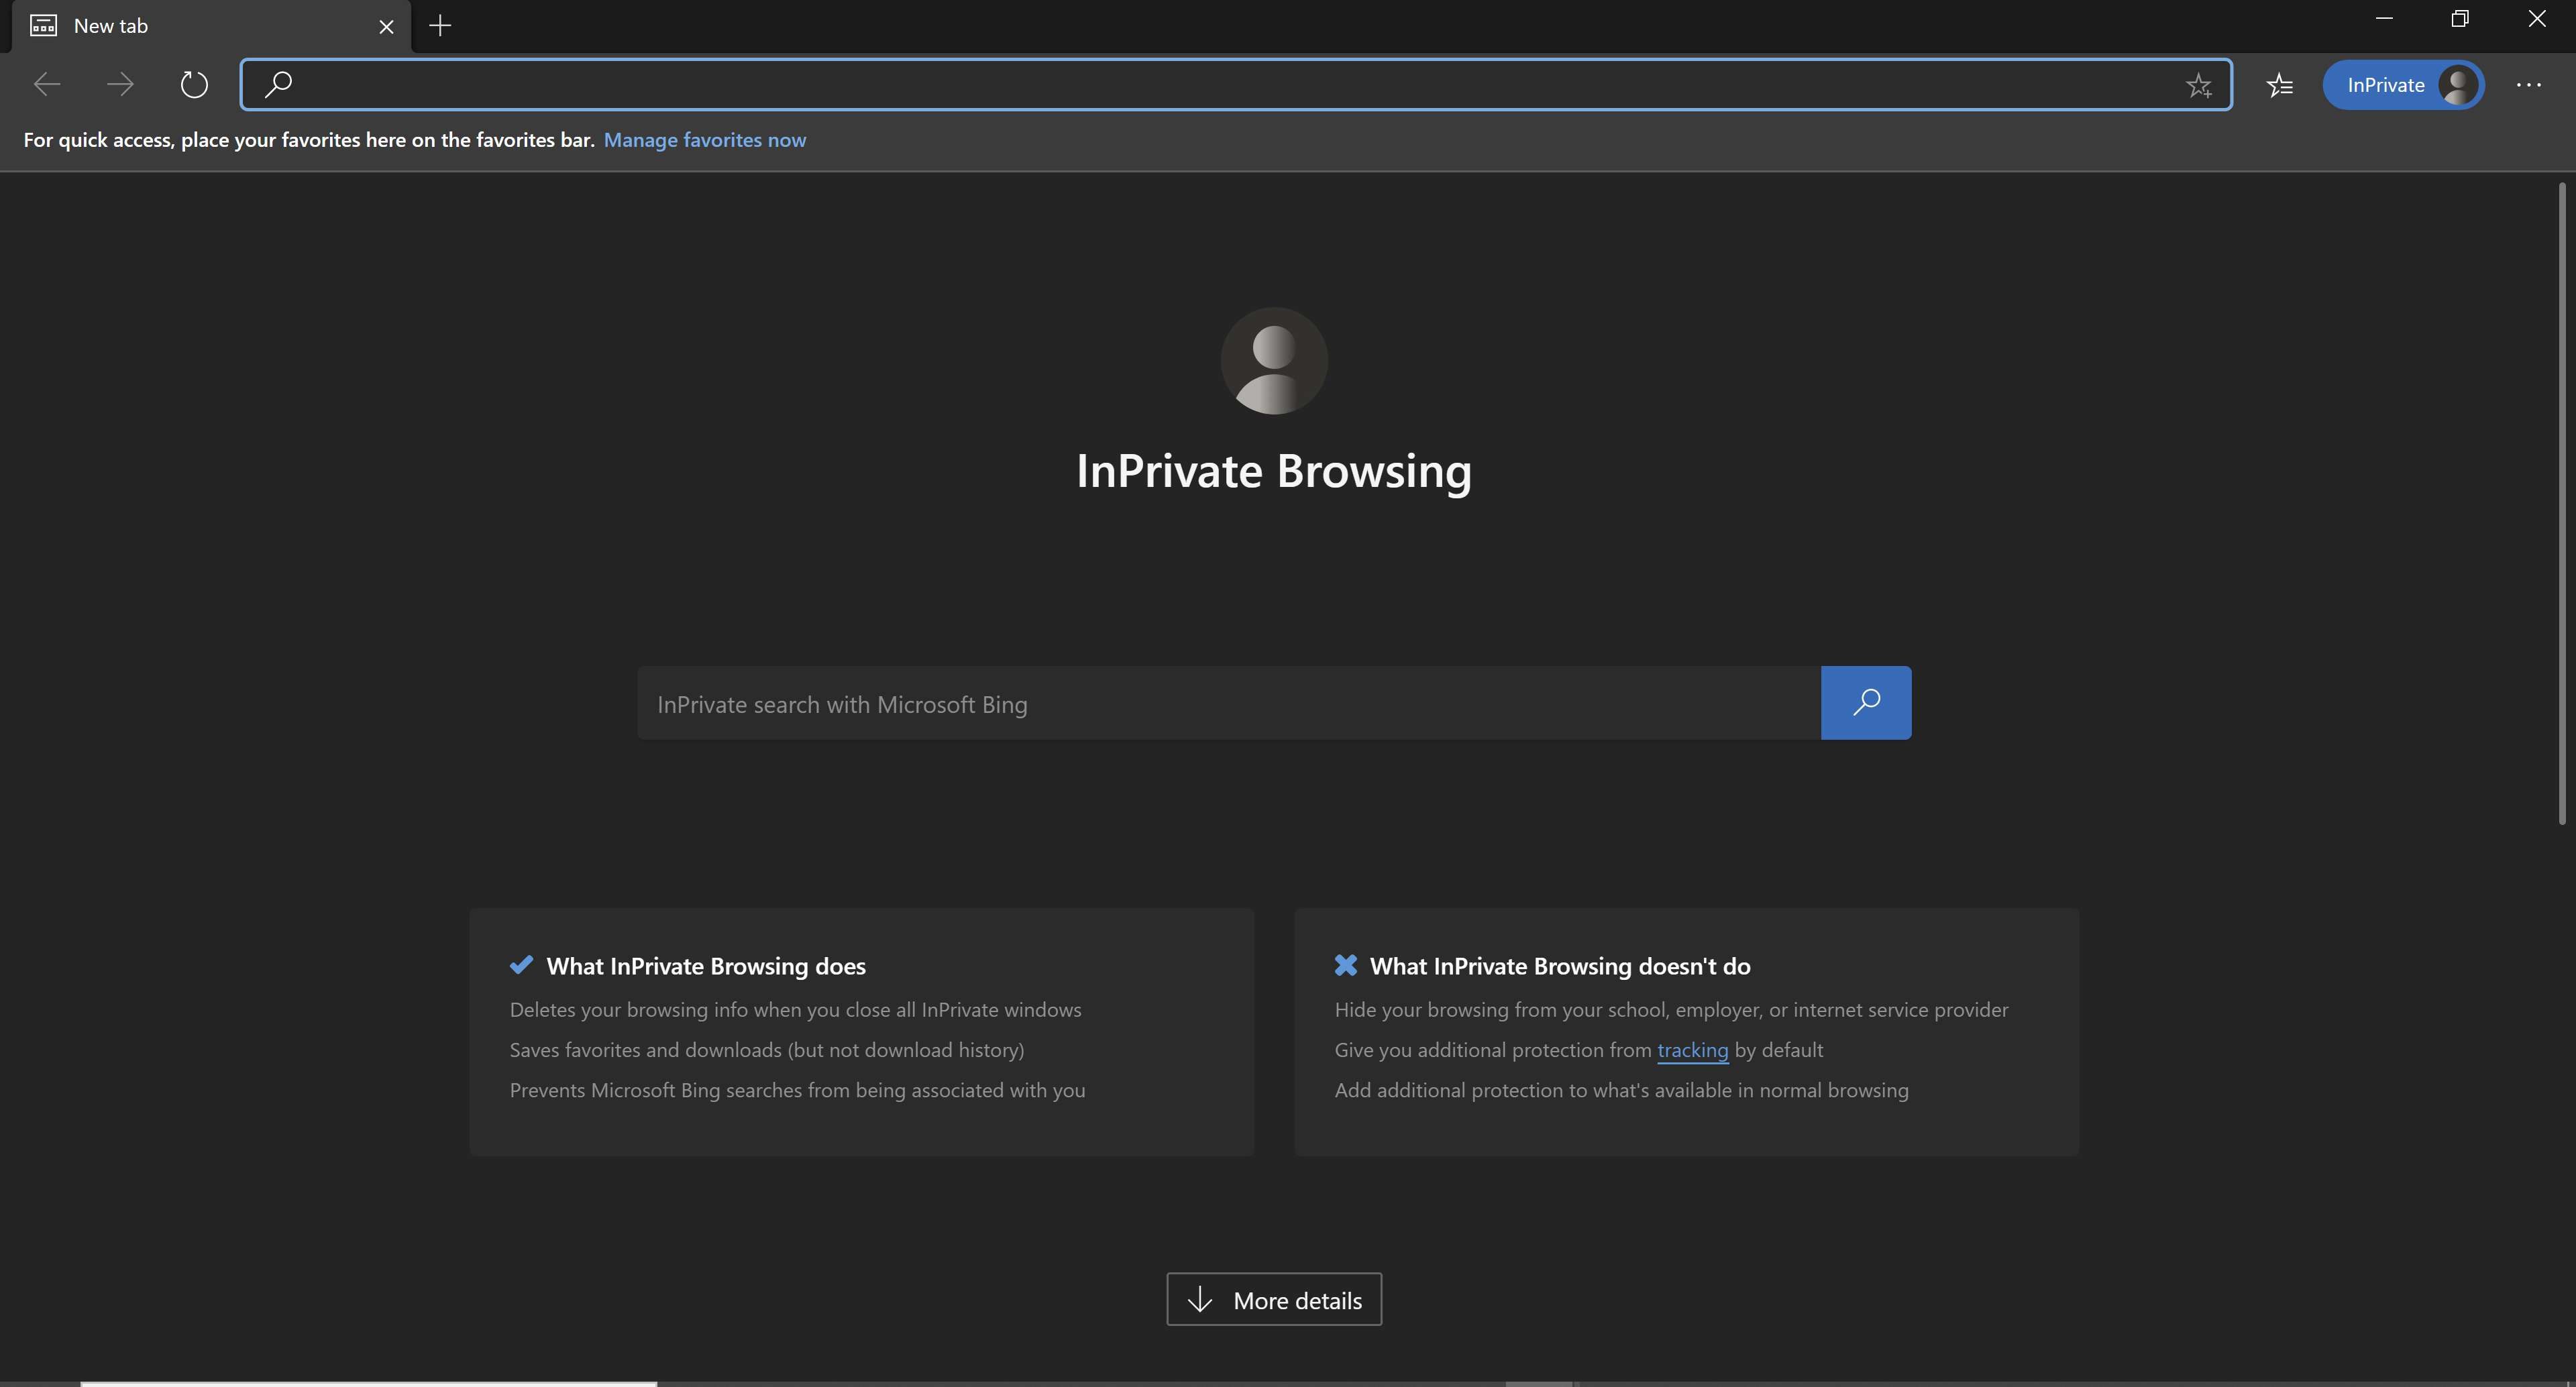 Using InPrivate Browsing in Microsoft Edge.